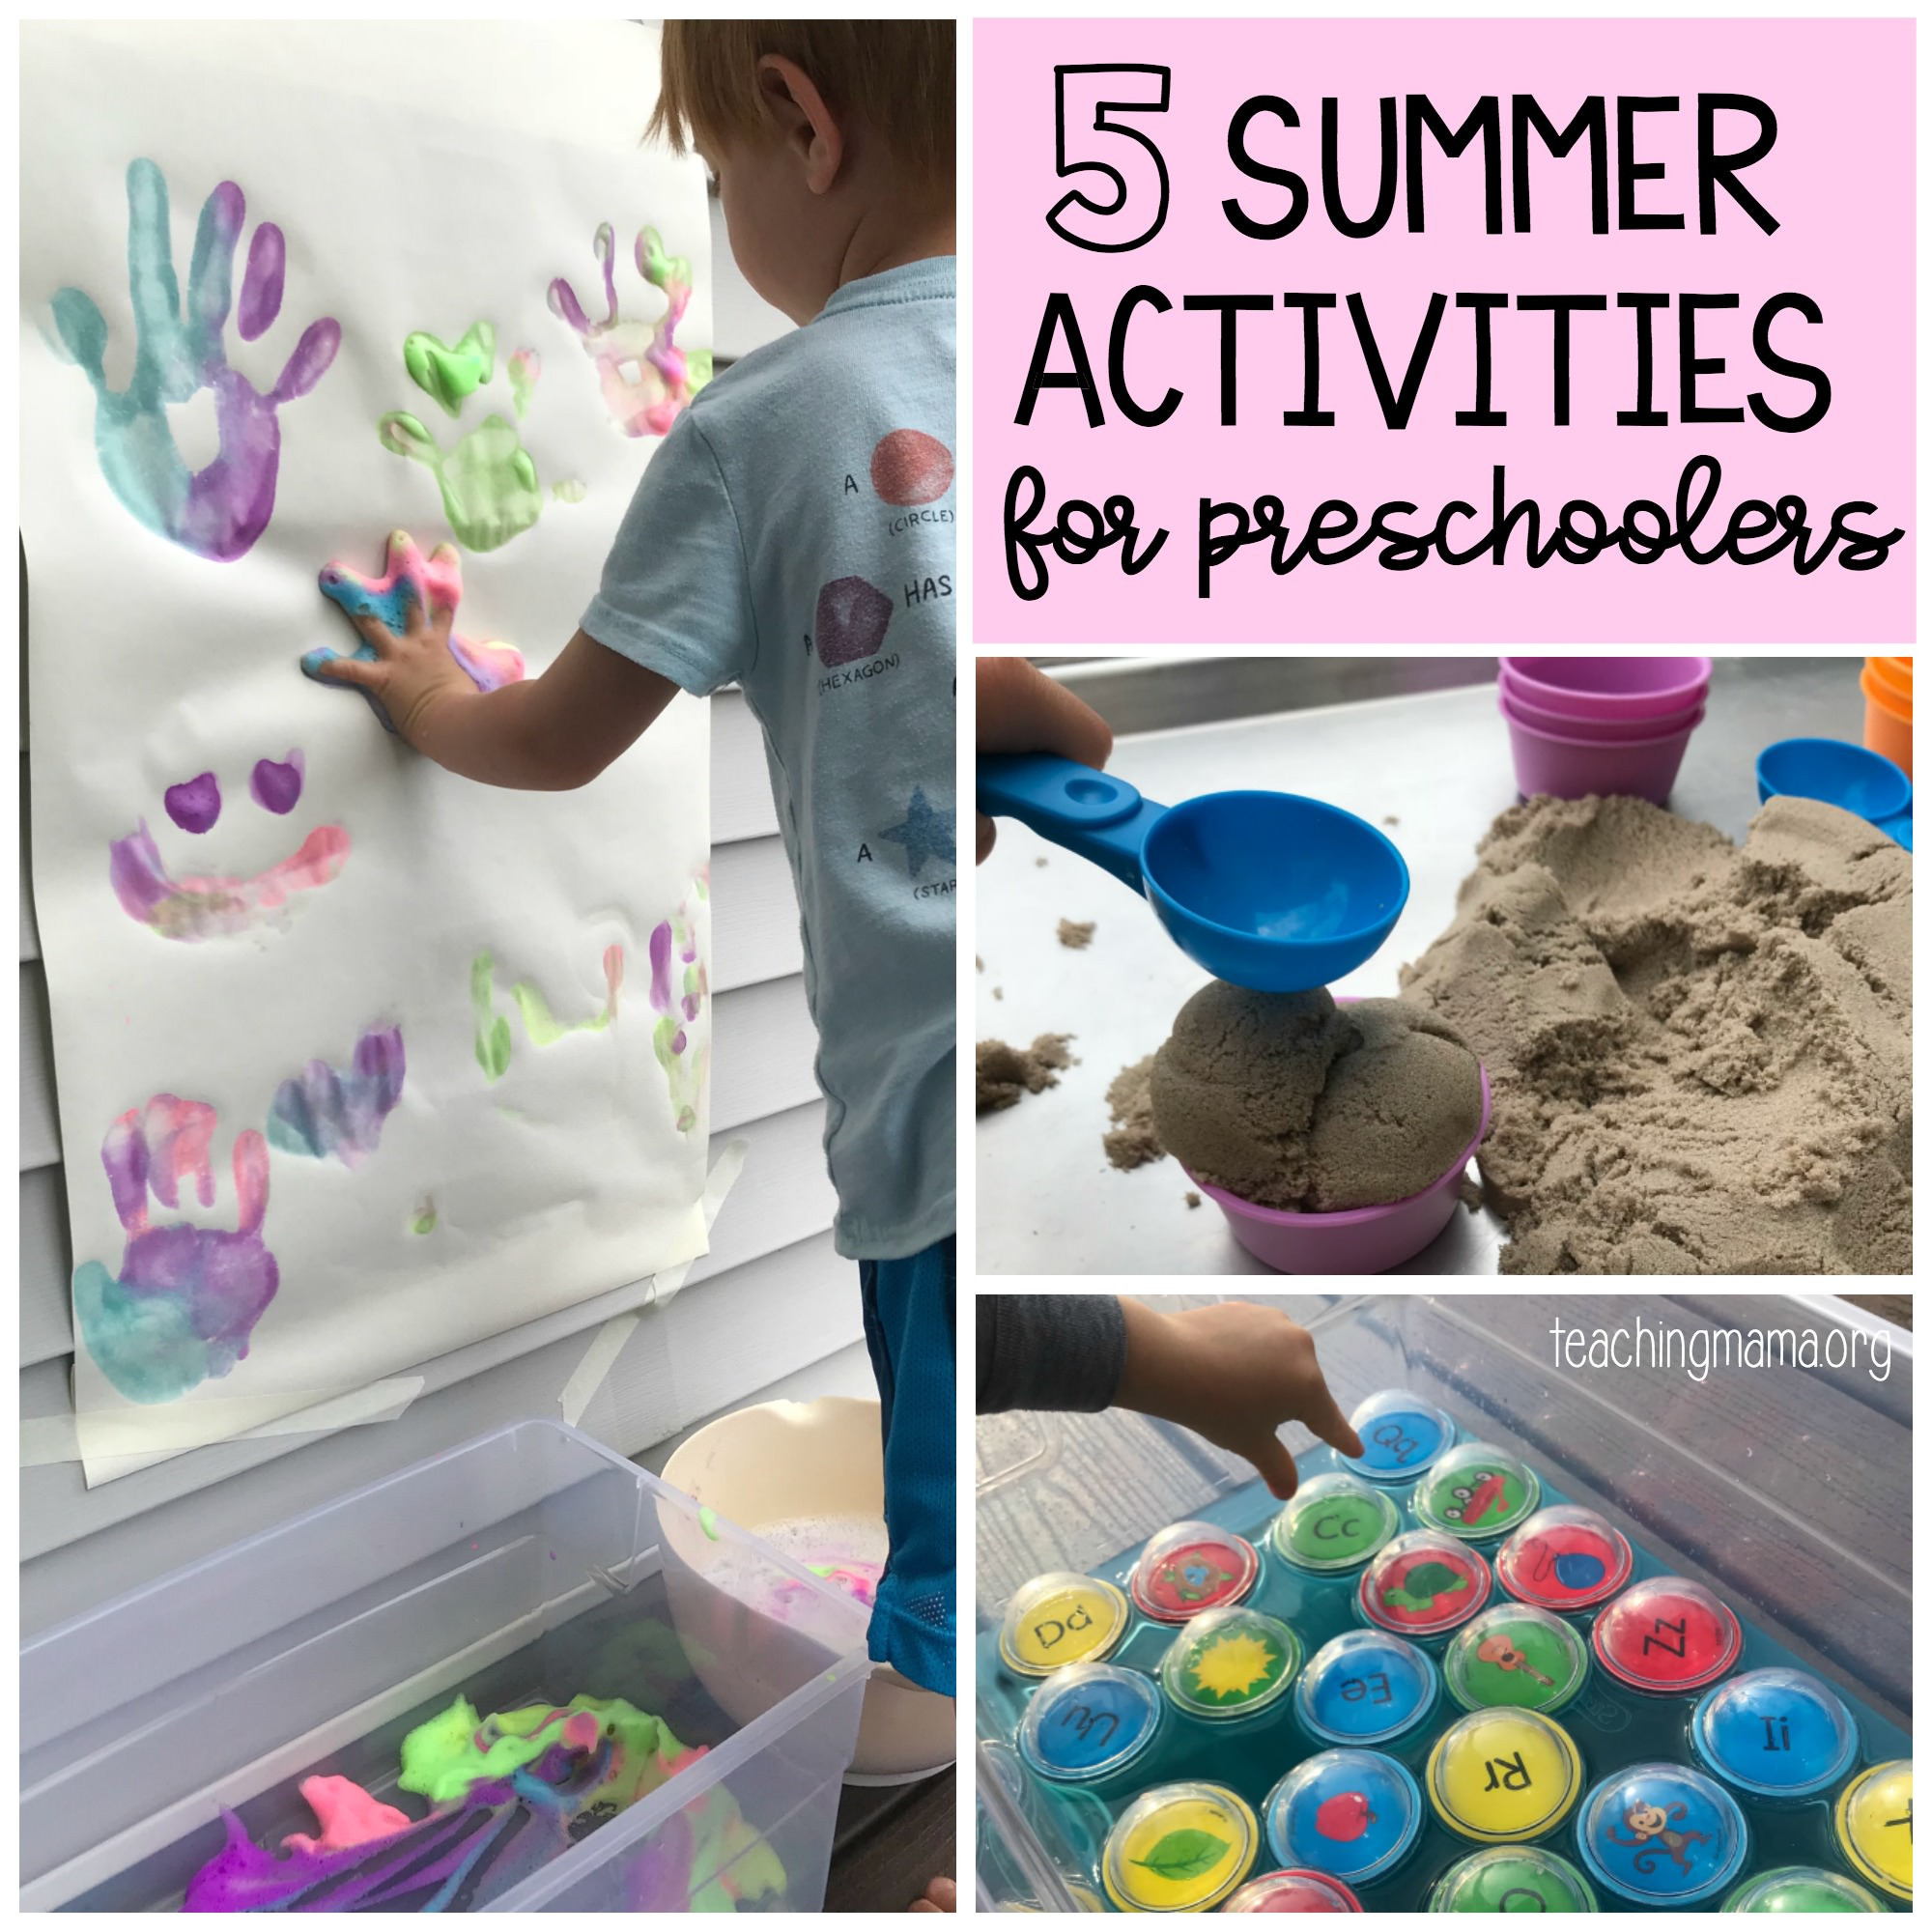 Best ideas about Fun Activities For Preschoolers . Save or Pin 5 Summer Activities for Preschoolers Now.